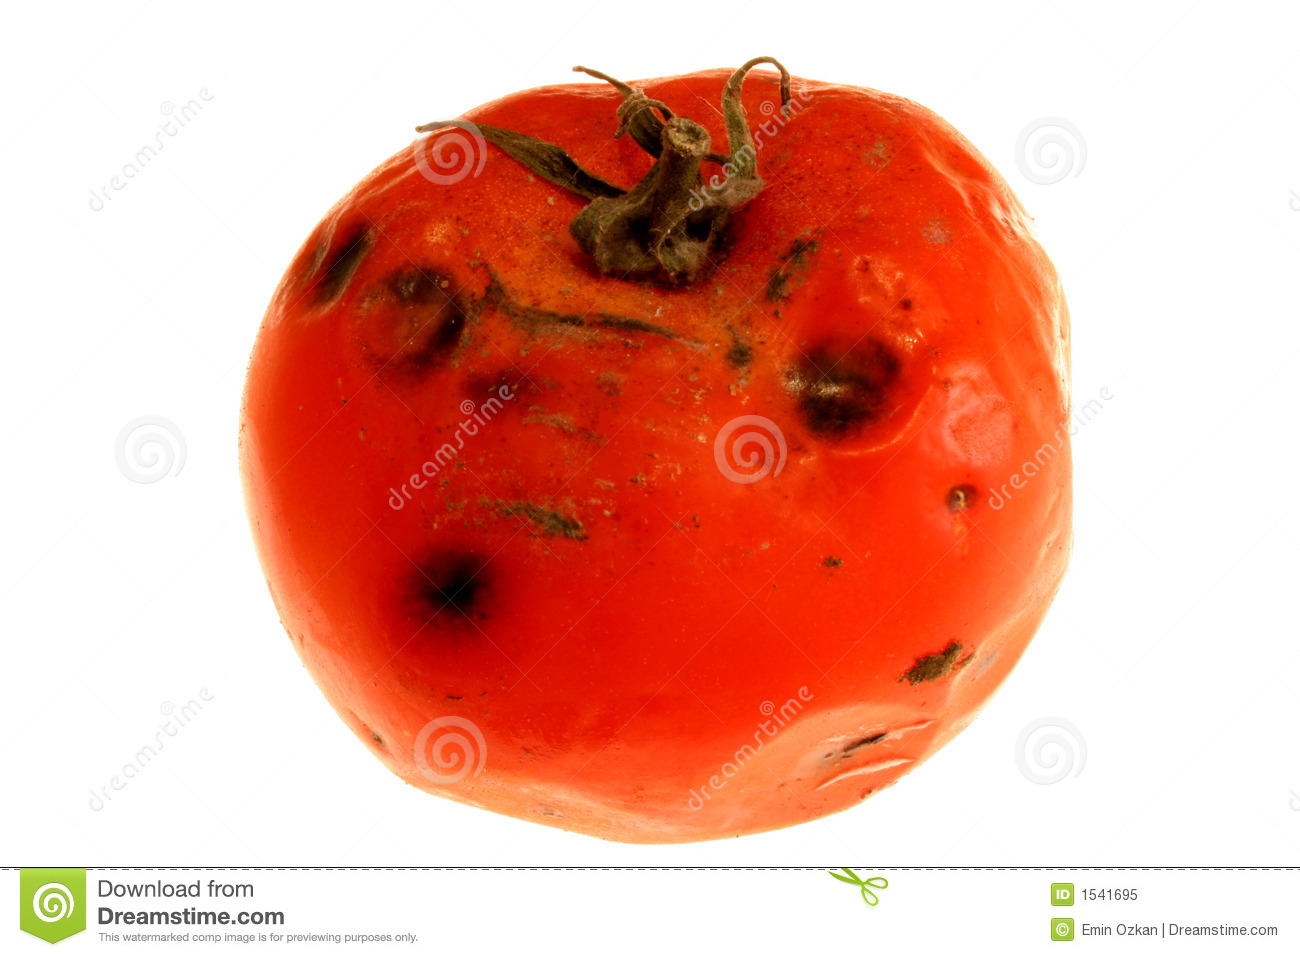 Rotten Tomato 2 Royalty Free Stock Photo - Image: 1541695